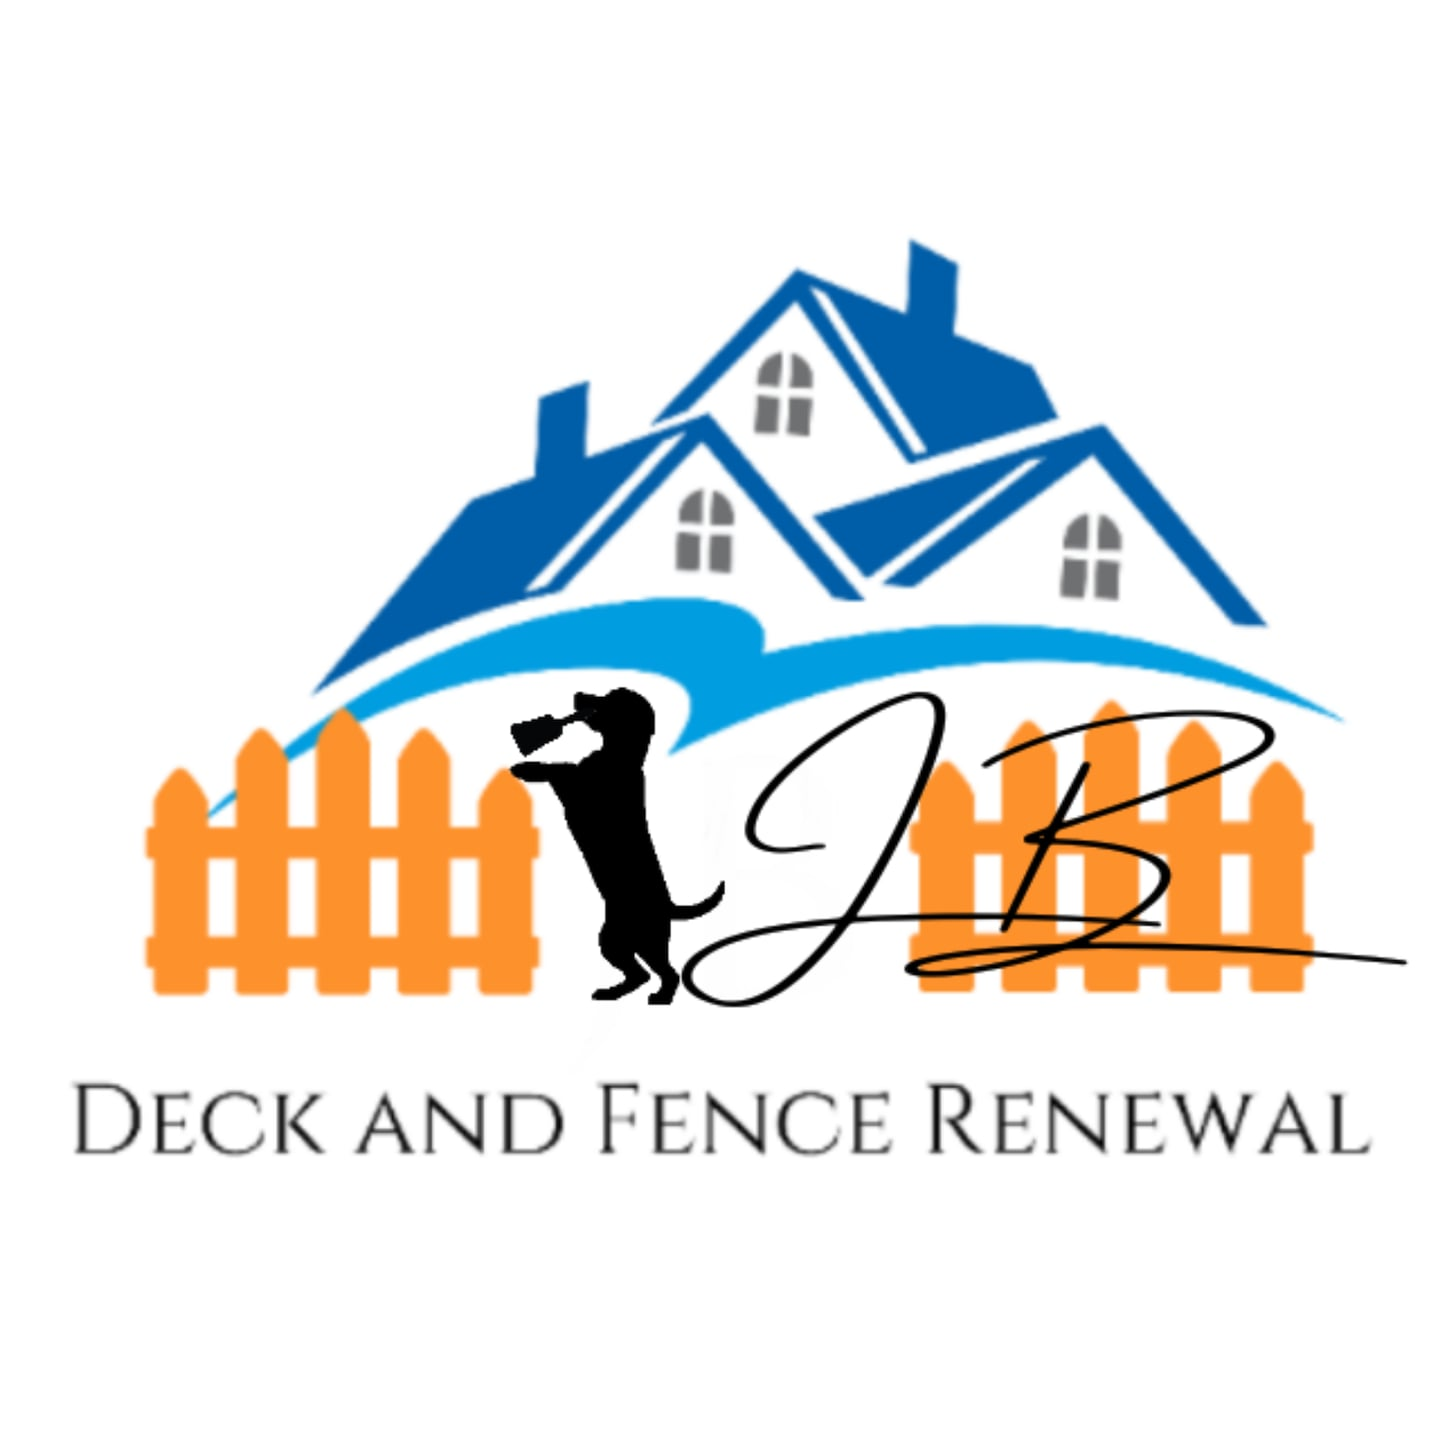 JB Deck and Fence